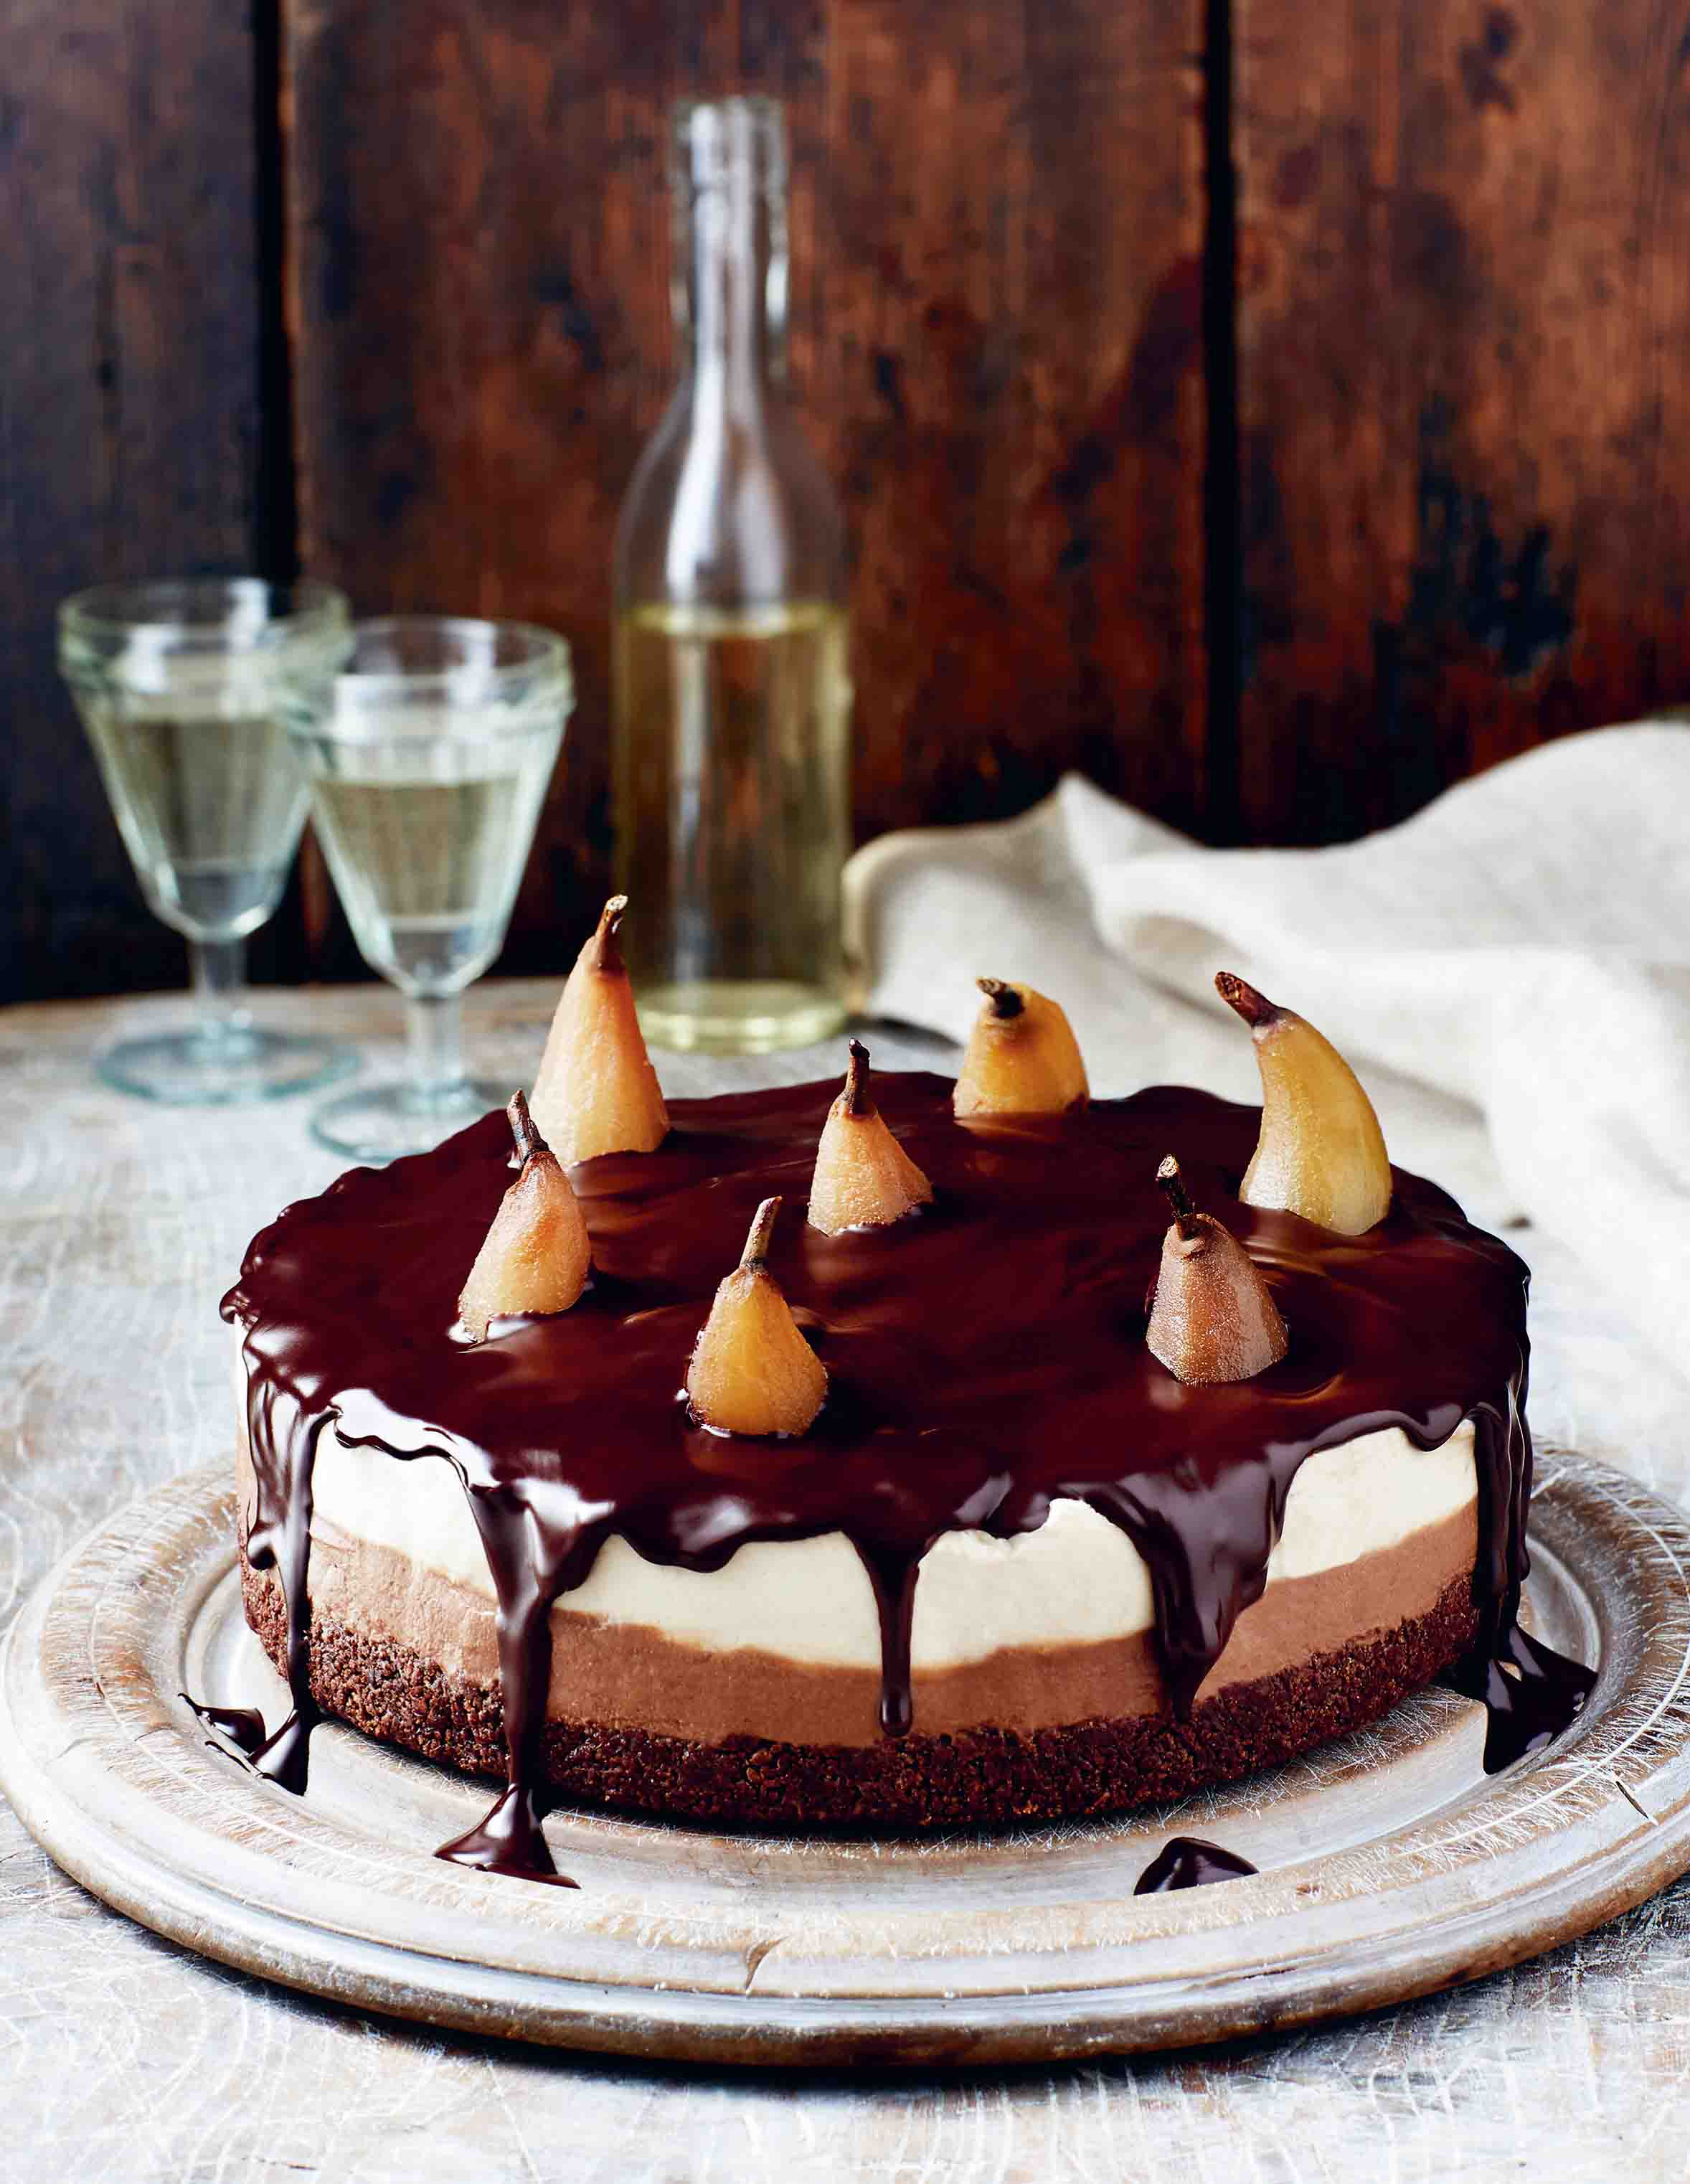 Chestnut and pear cheesecake